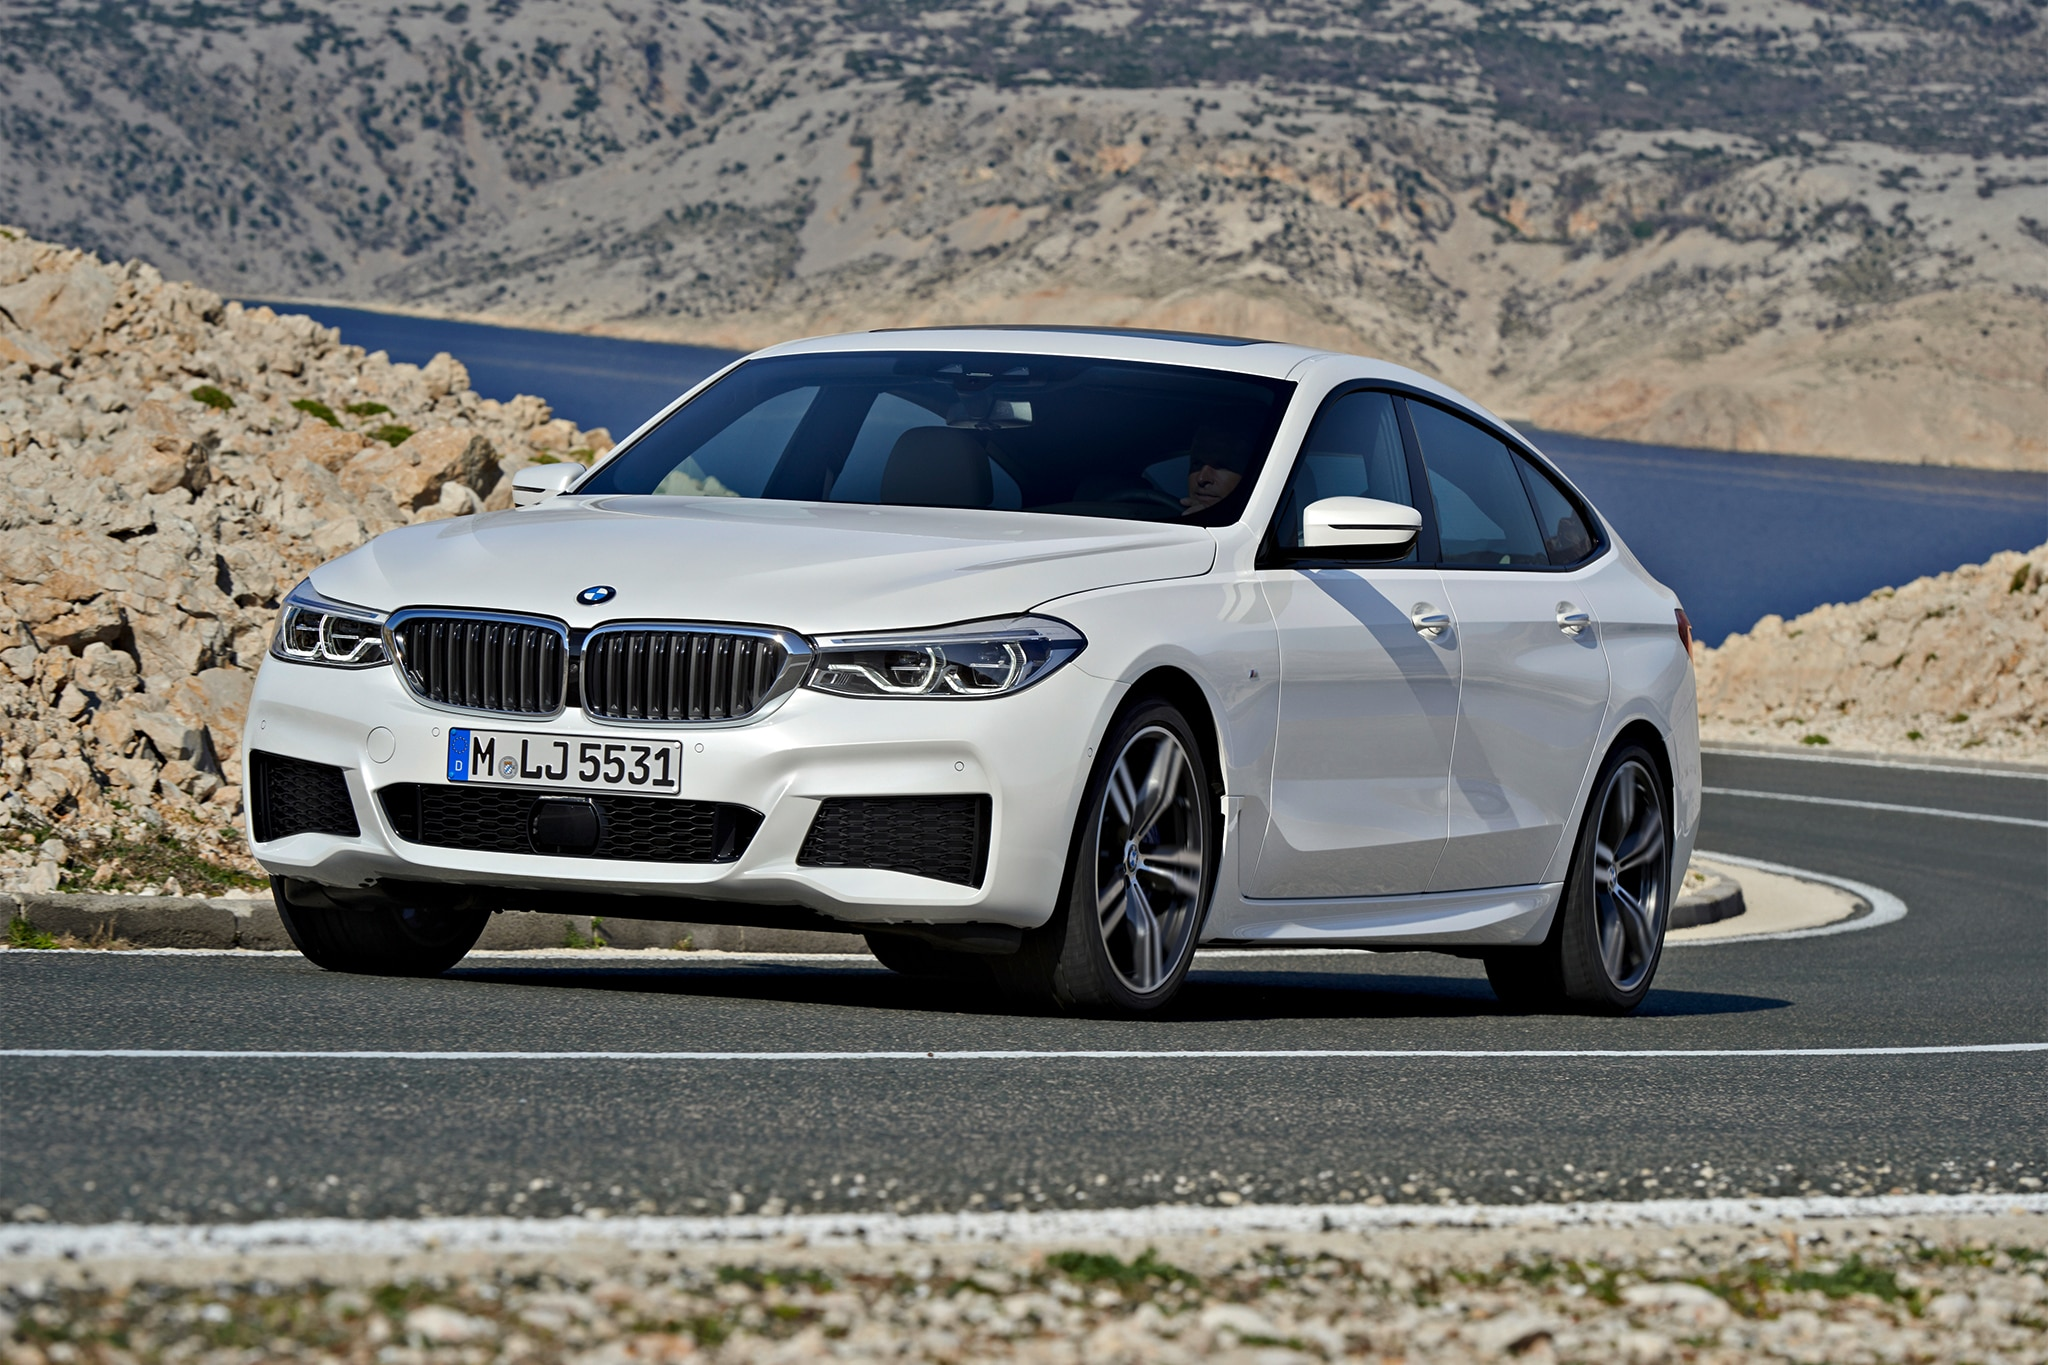 2018 bmw 640i xdrive gran turismo picks up where the 5 gt. Black Bedroom Furniture Sets. Home Design Ideas